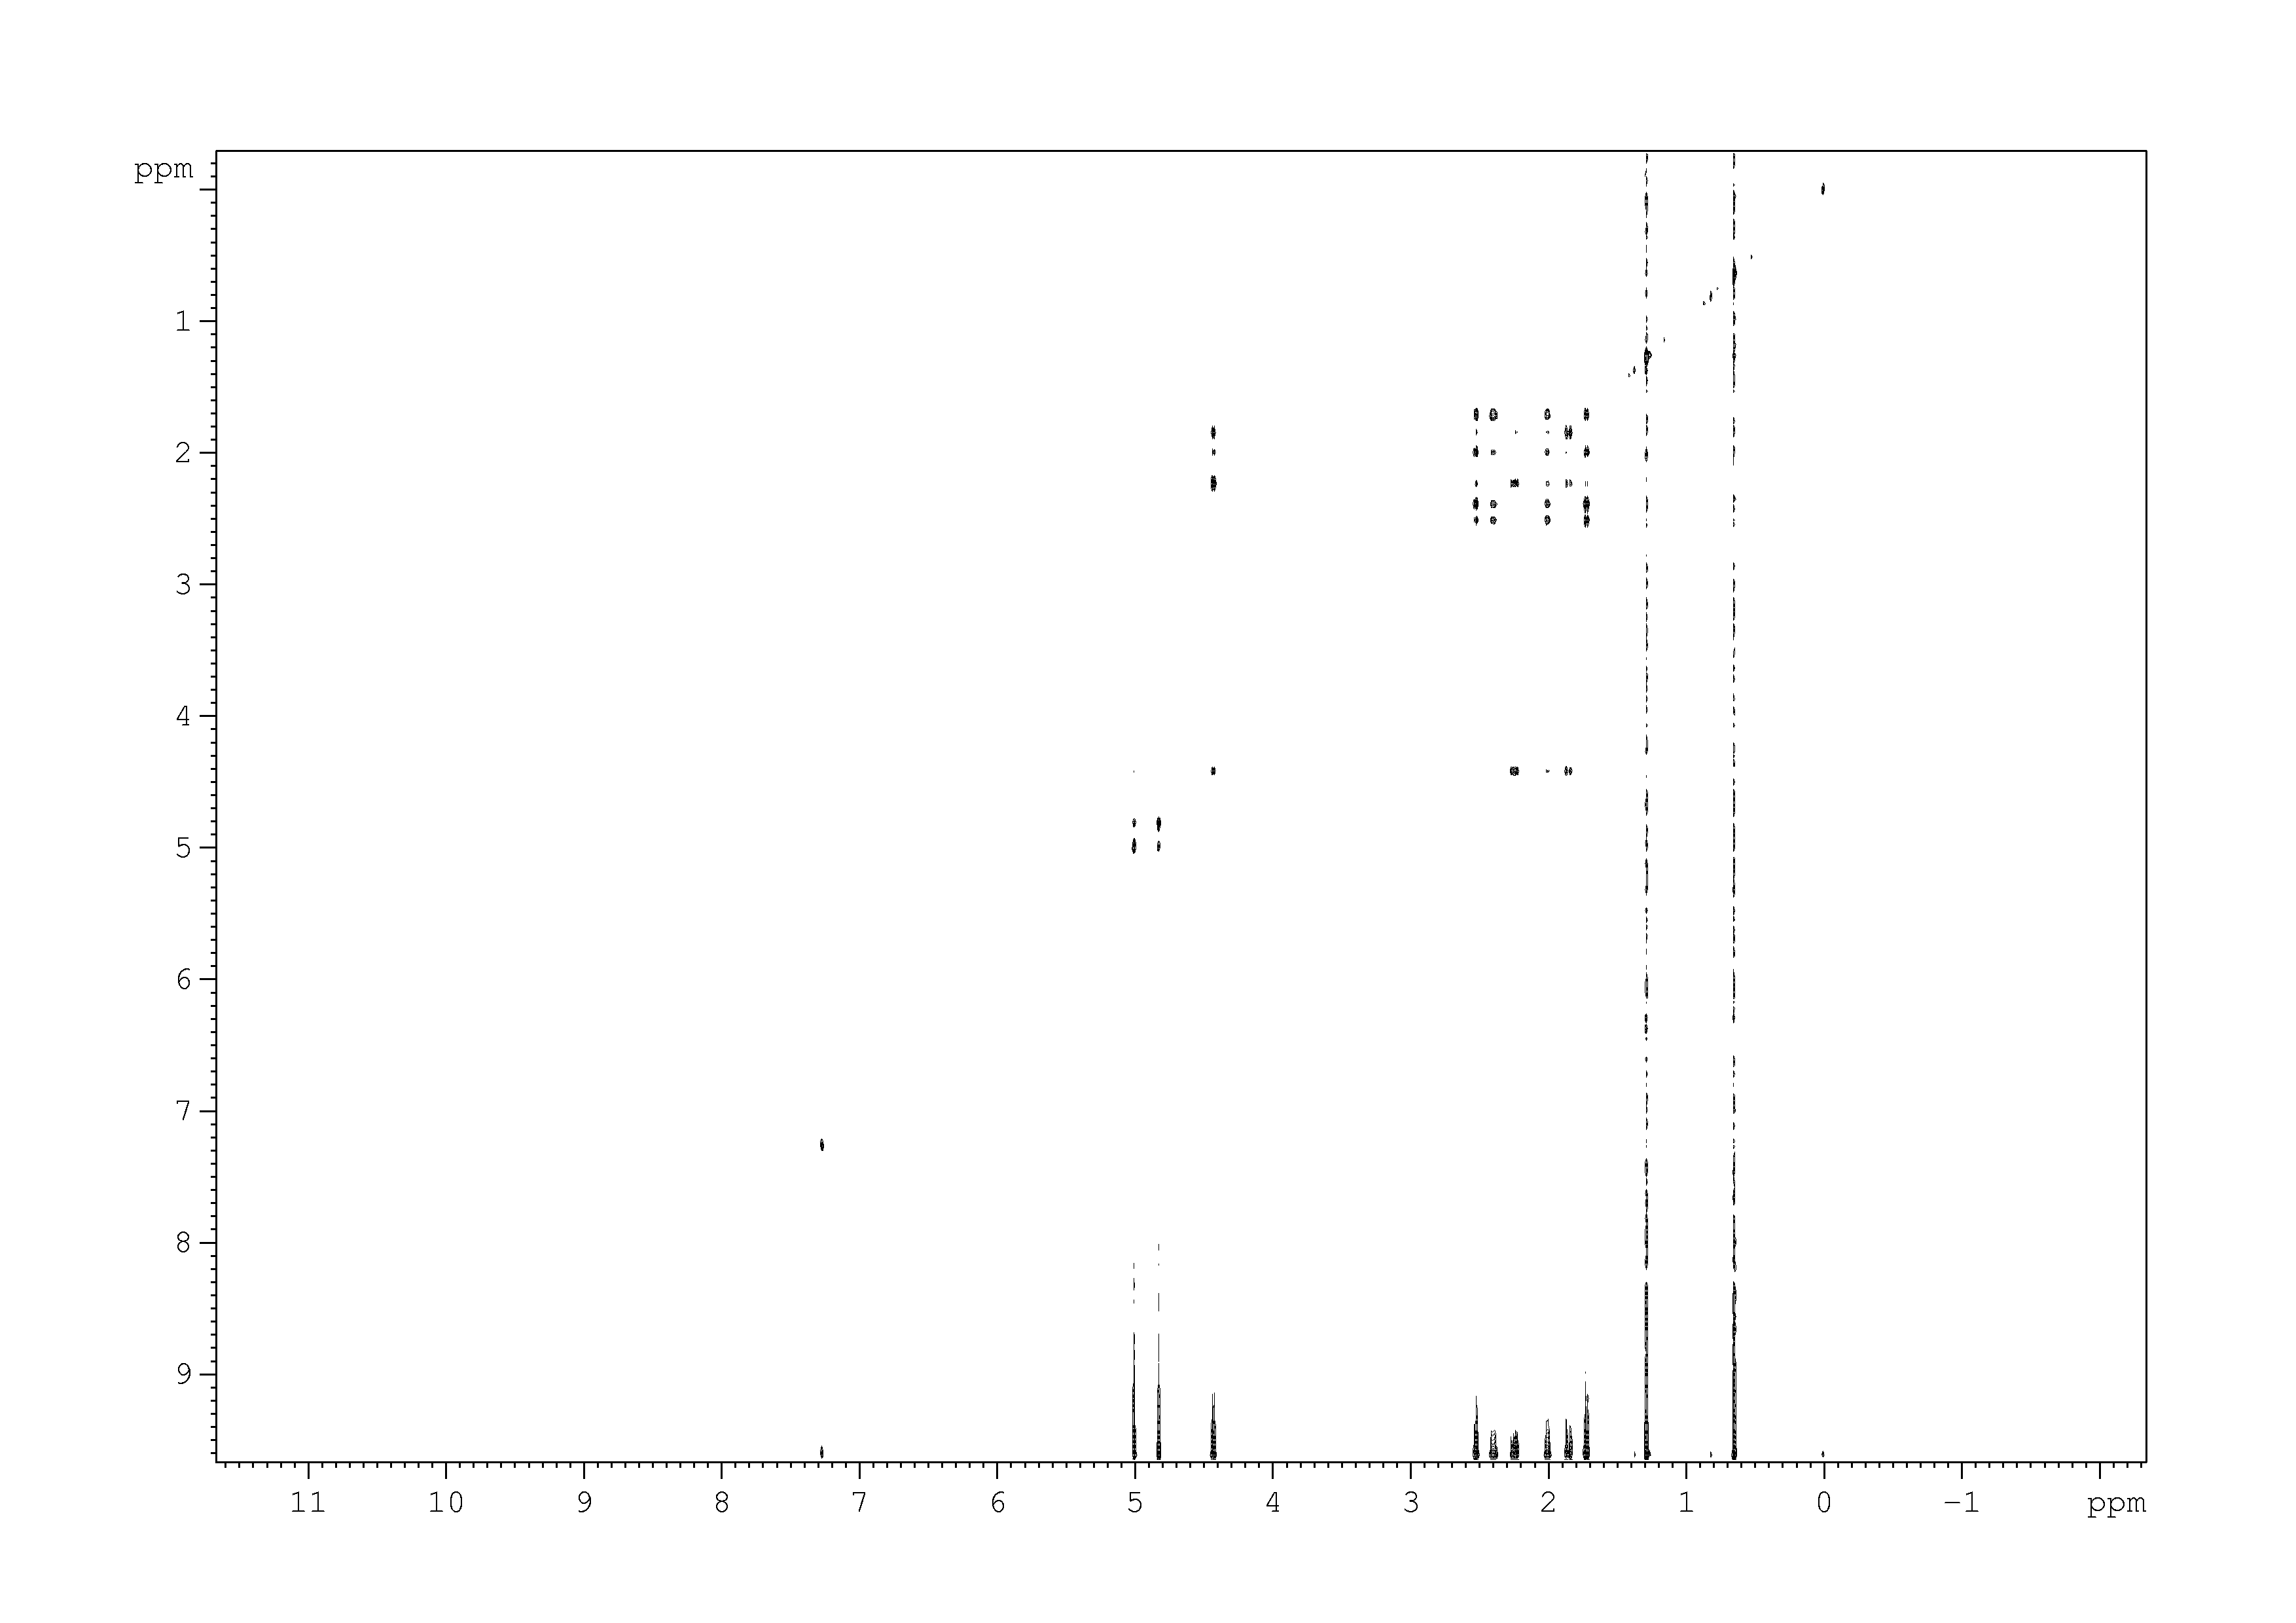 2D [1H,1H]-TOCSY, n/a spectrum for pinocarveol